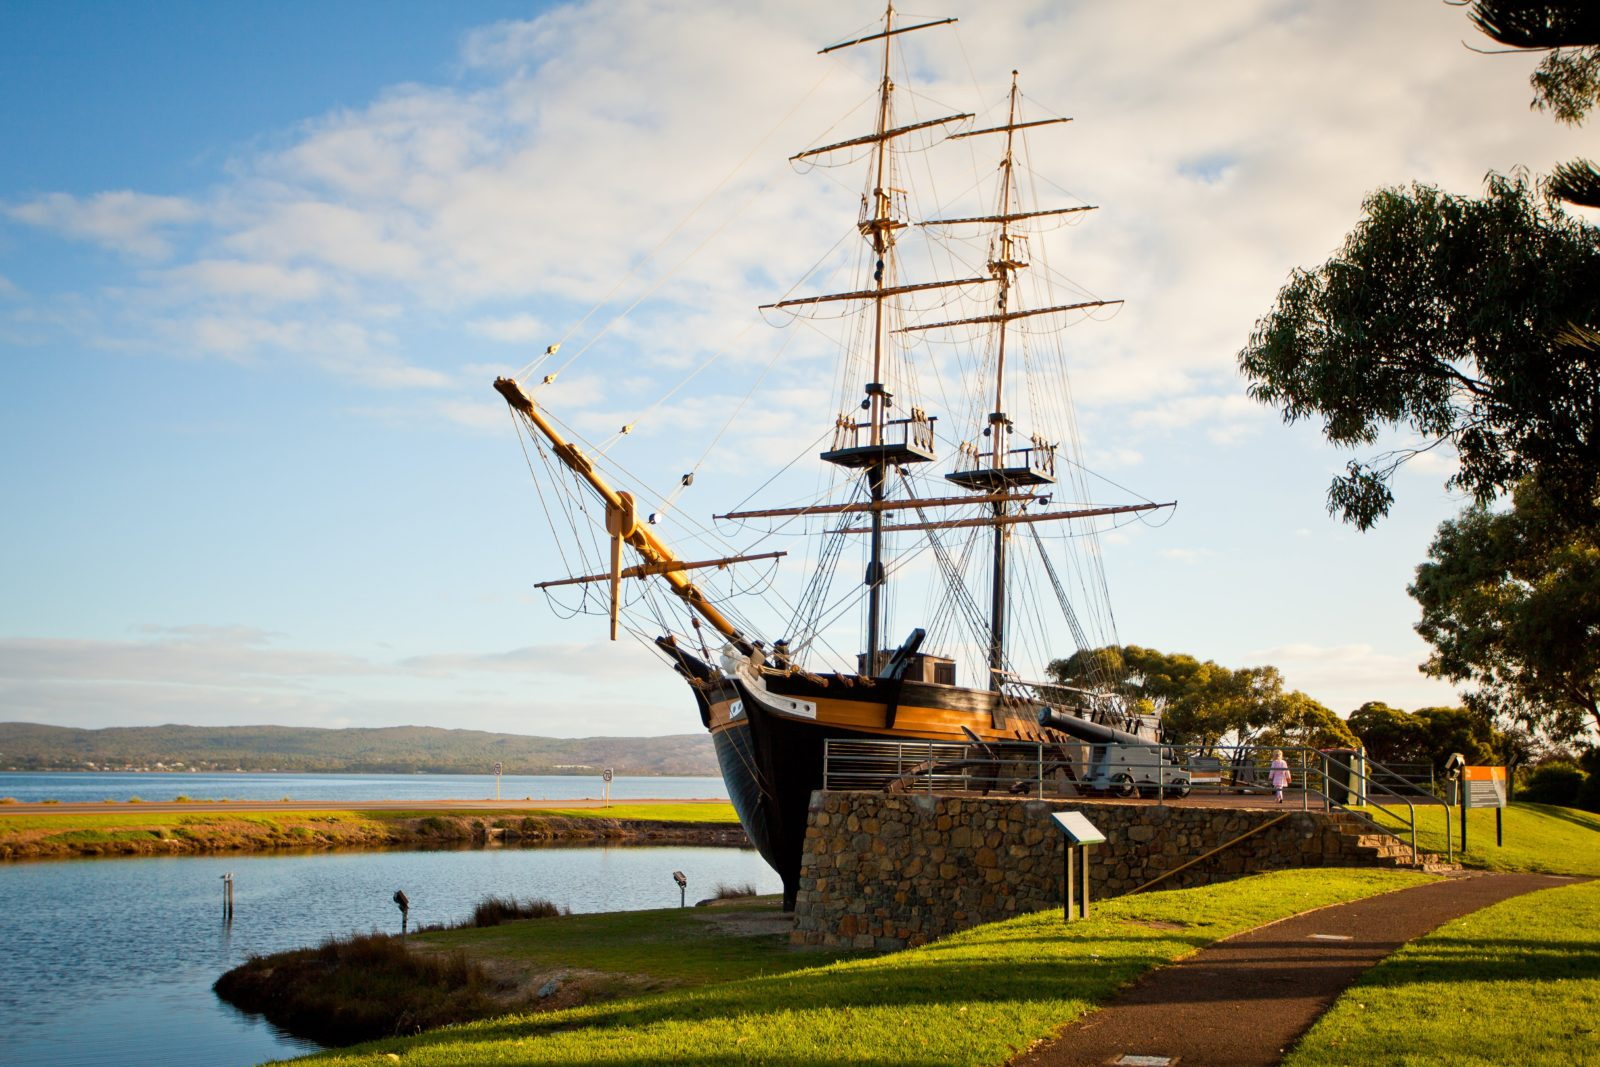 Replica of the Brig Amity, Albany, Western Australia